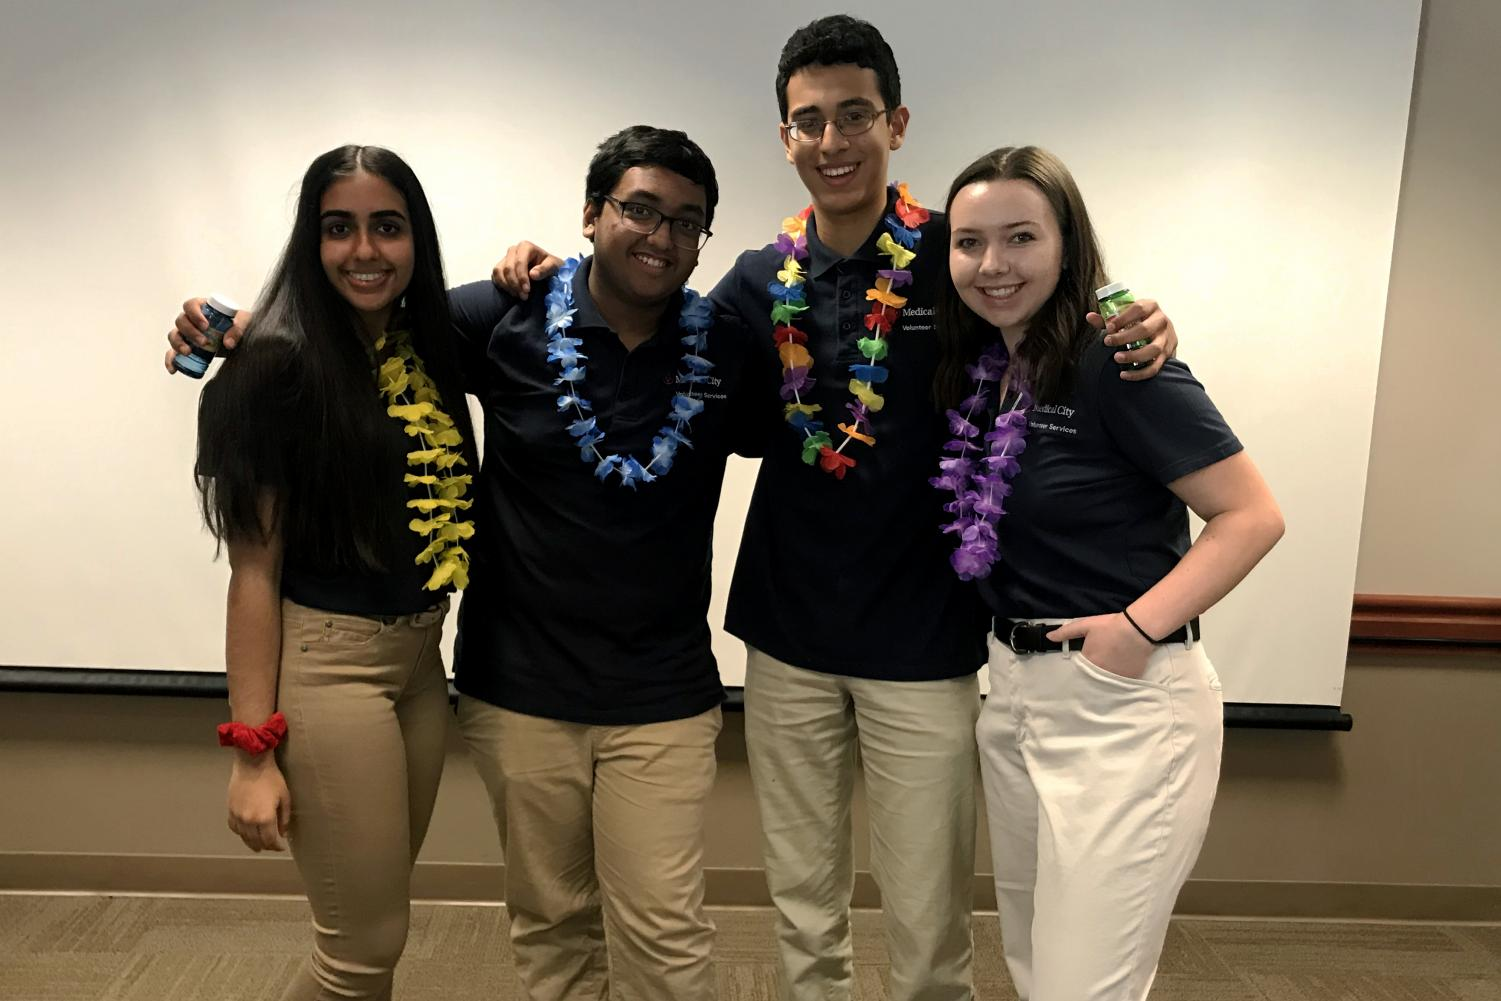 From left: Junior Pahul Ghumman, senior Daiyan Chowdhury, junior Chris Abdalla and sophomore Claire Easley were four of the students out of the 89 total that applied accepted into the internship.